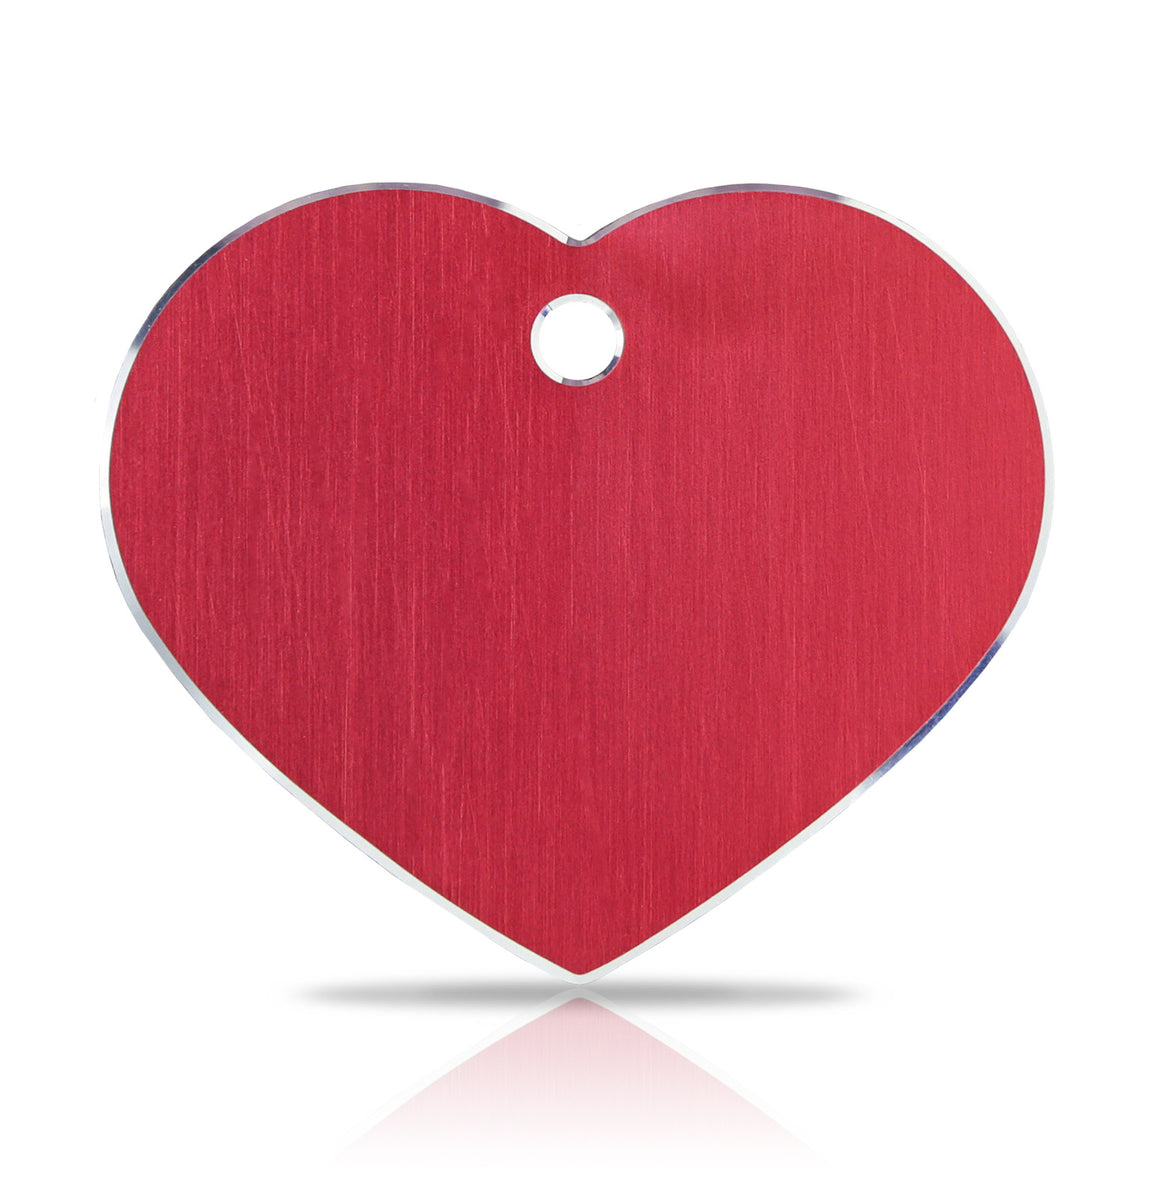 TaggIT Hi-Line Large Heart Red Aluminium iMarc Pet Tag